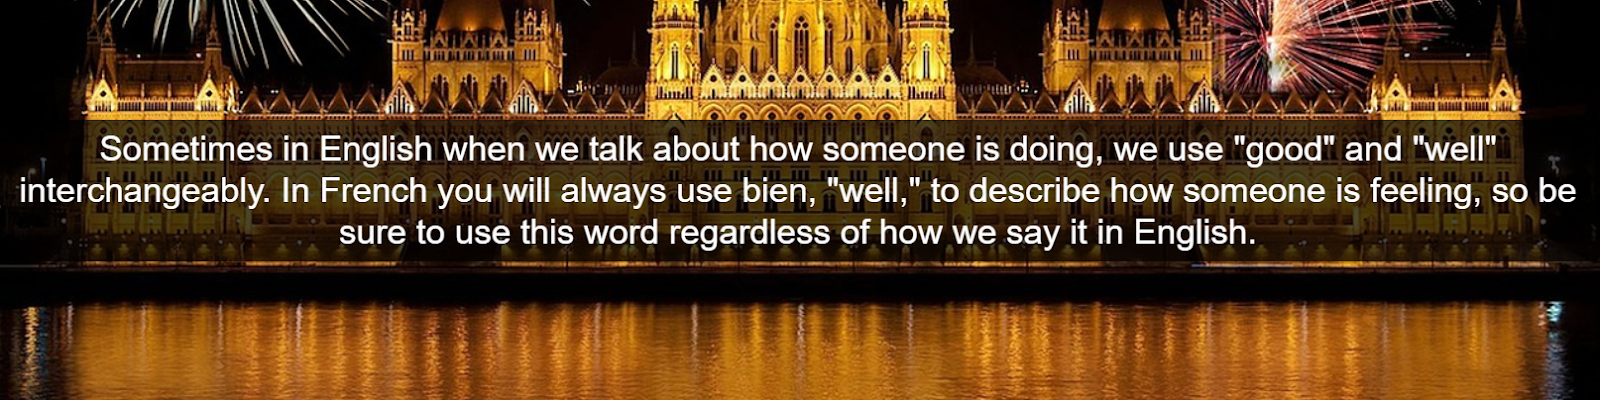 Sometimes in English when we talk about how someone is doing, we use good and well interchangeably.  In French you will always use bien, well, to describe how someone is feeling, so be sure to use this word regardless of how we say it in English.